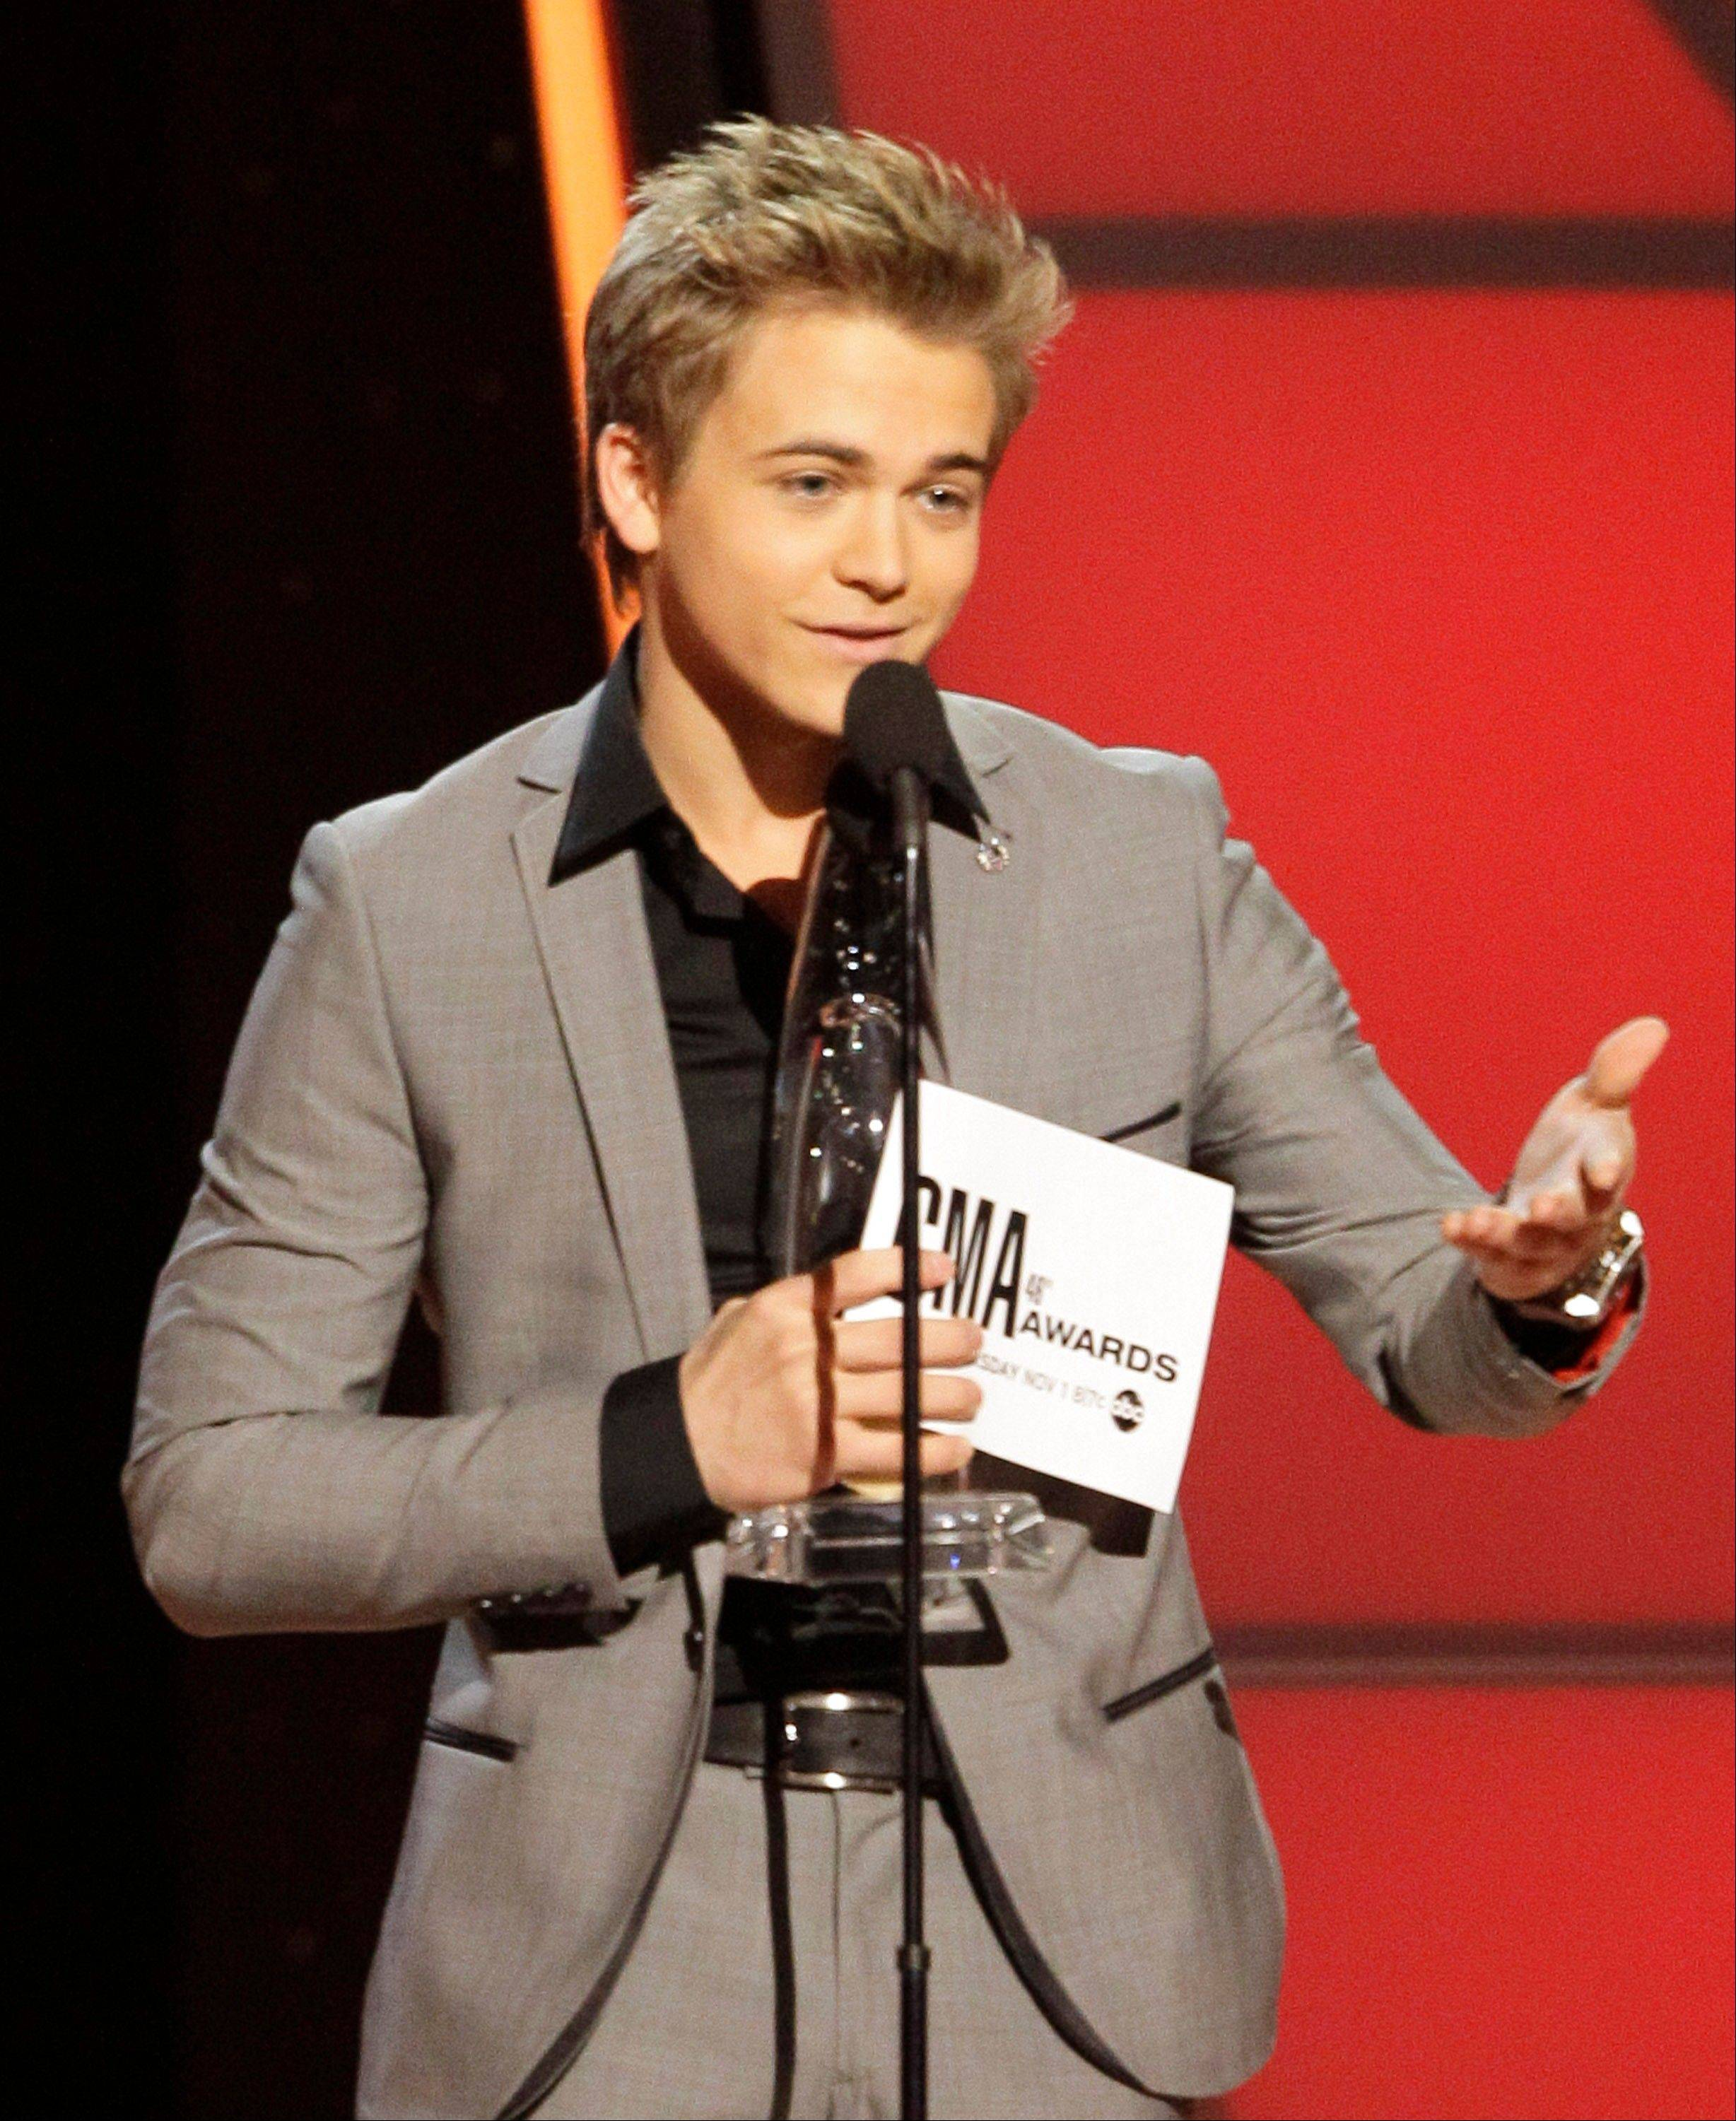 Hunter Hayes accepts the new artist of the year award at the 46th Annual Country Music Awards at the Bridgestone Arena on Thursday, Nov. 1, 2012, in Nashville, Tenn.